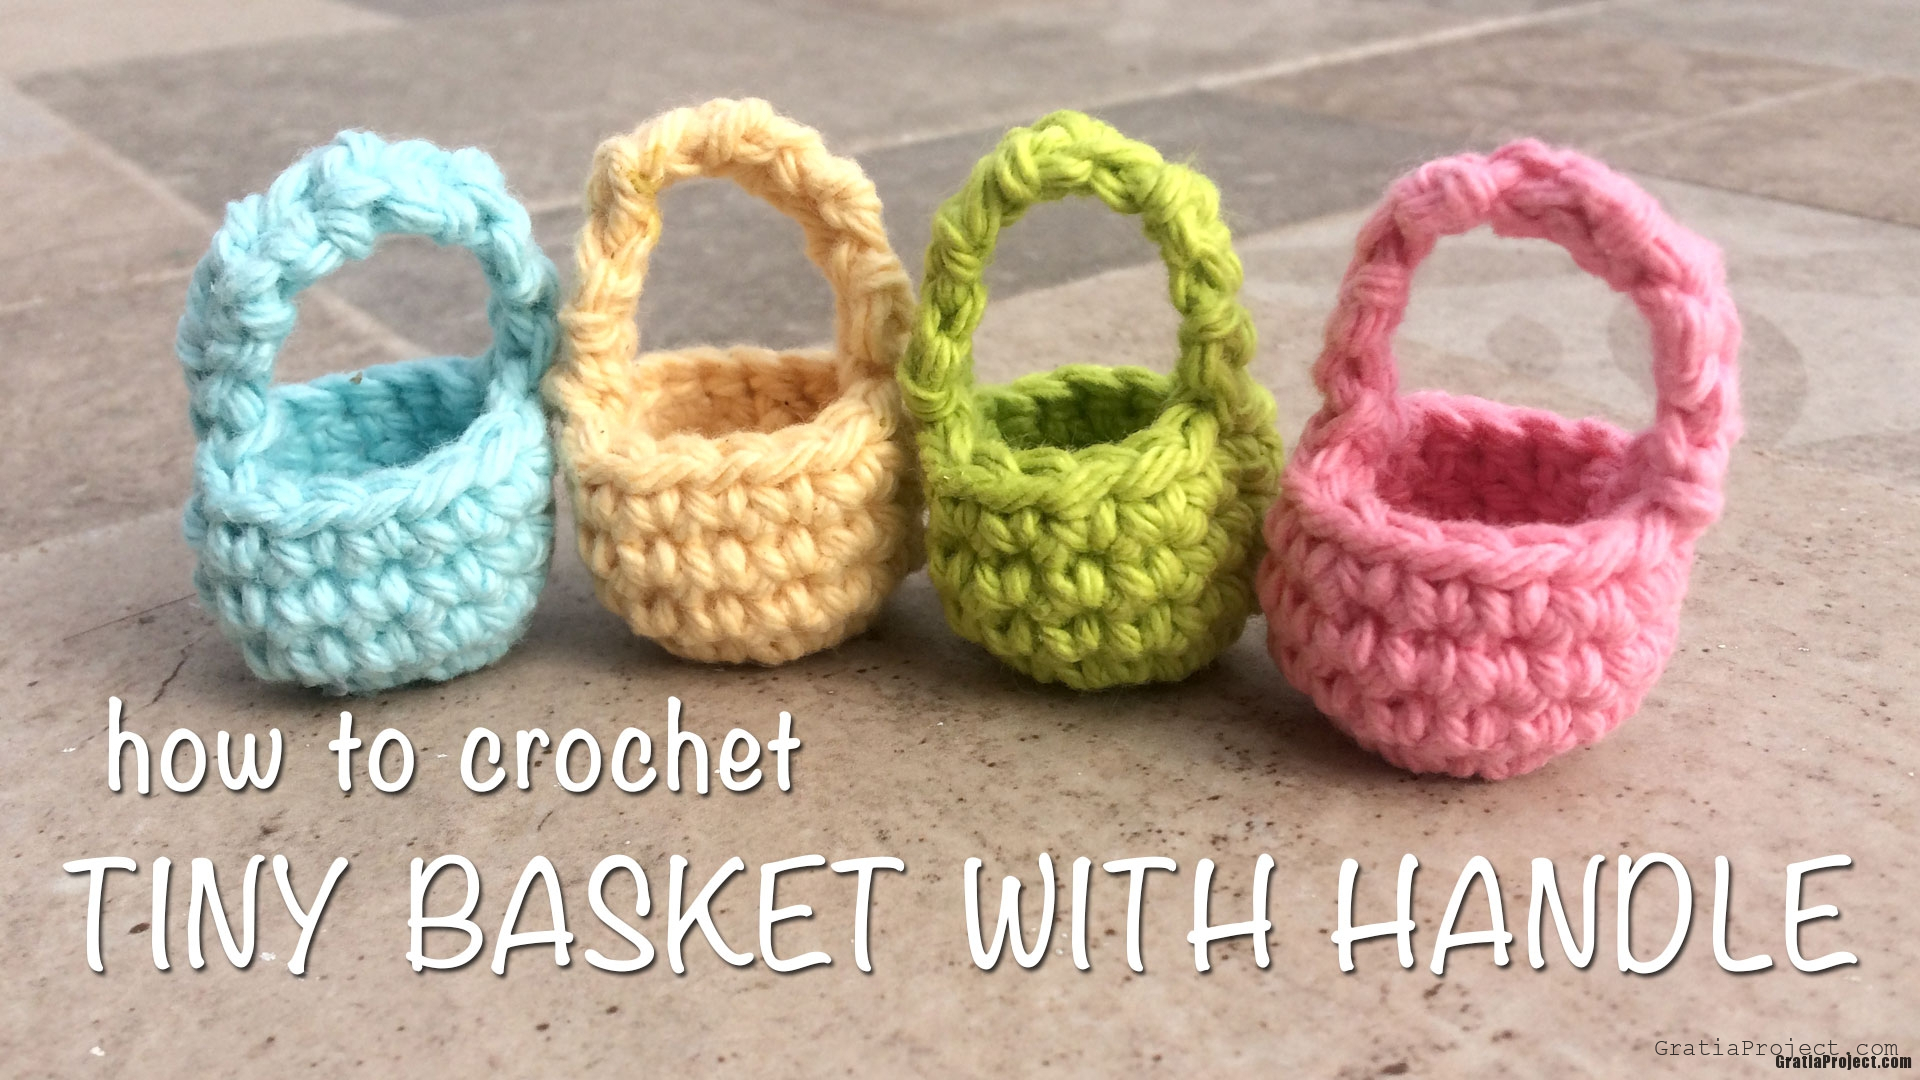 how-to-crochet-tiny-basket-with-handle